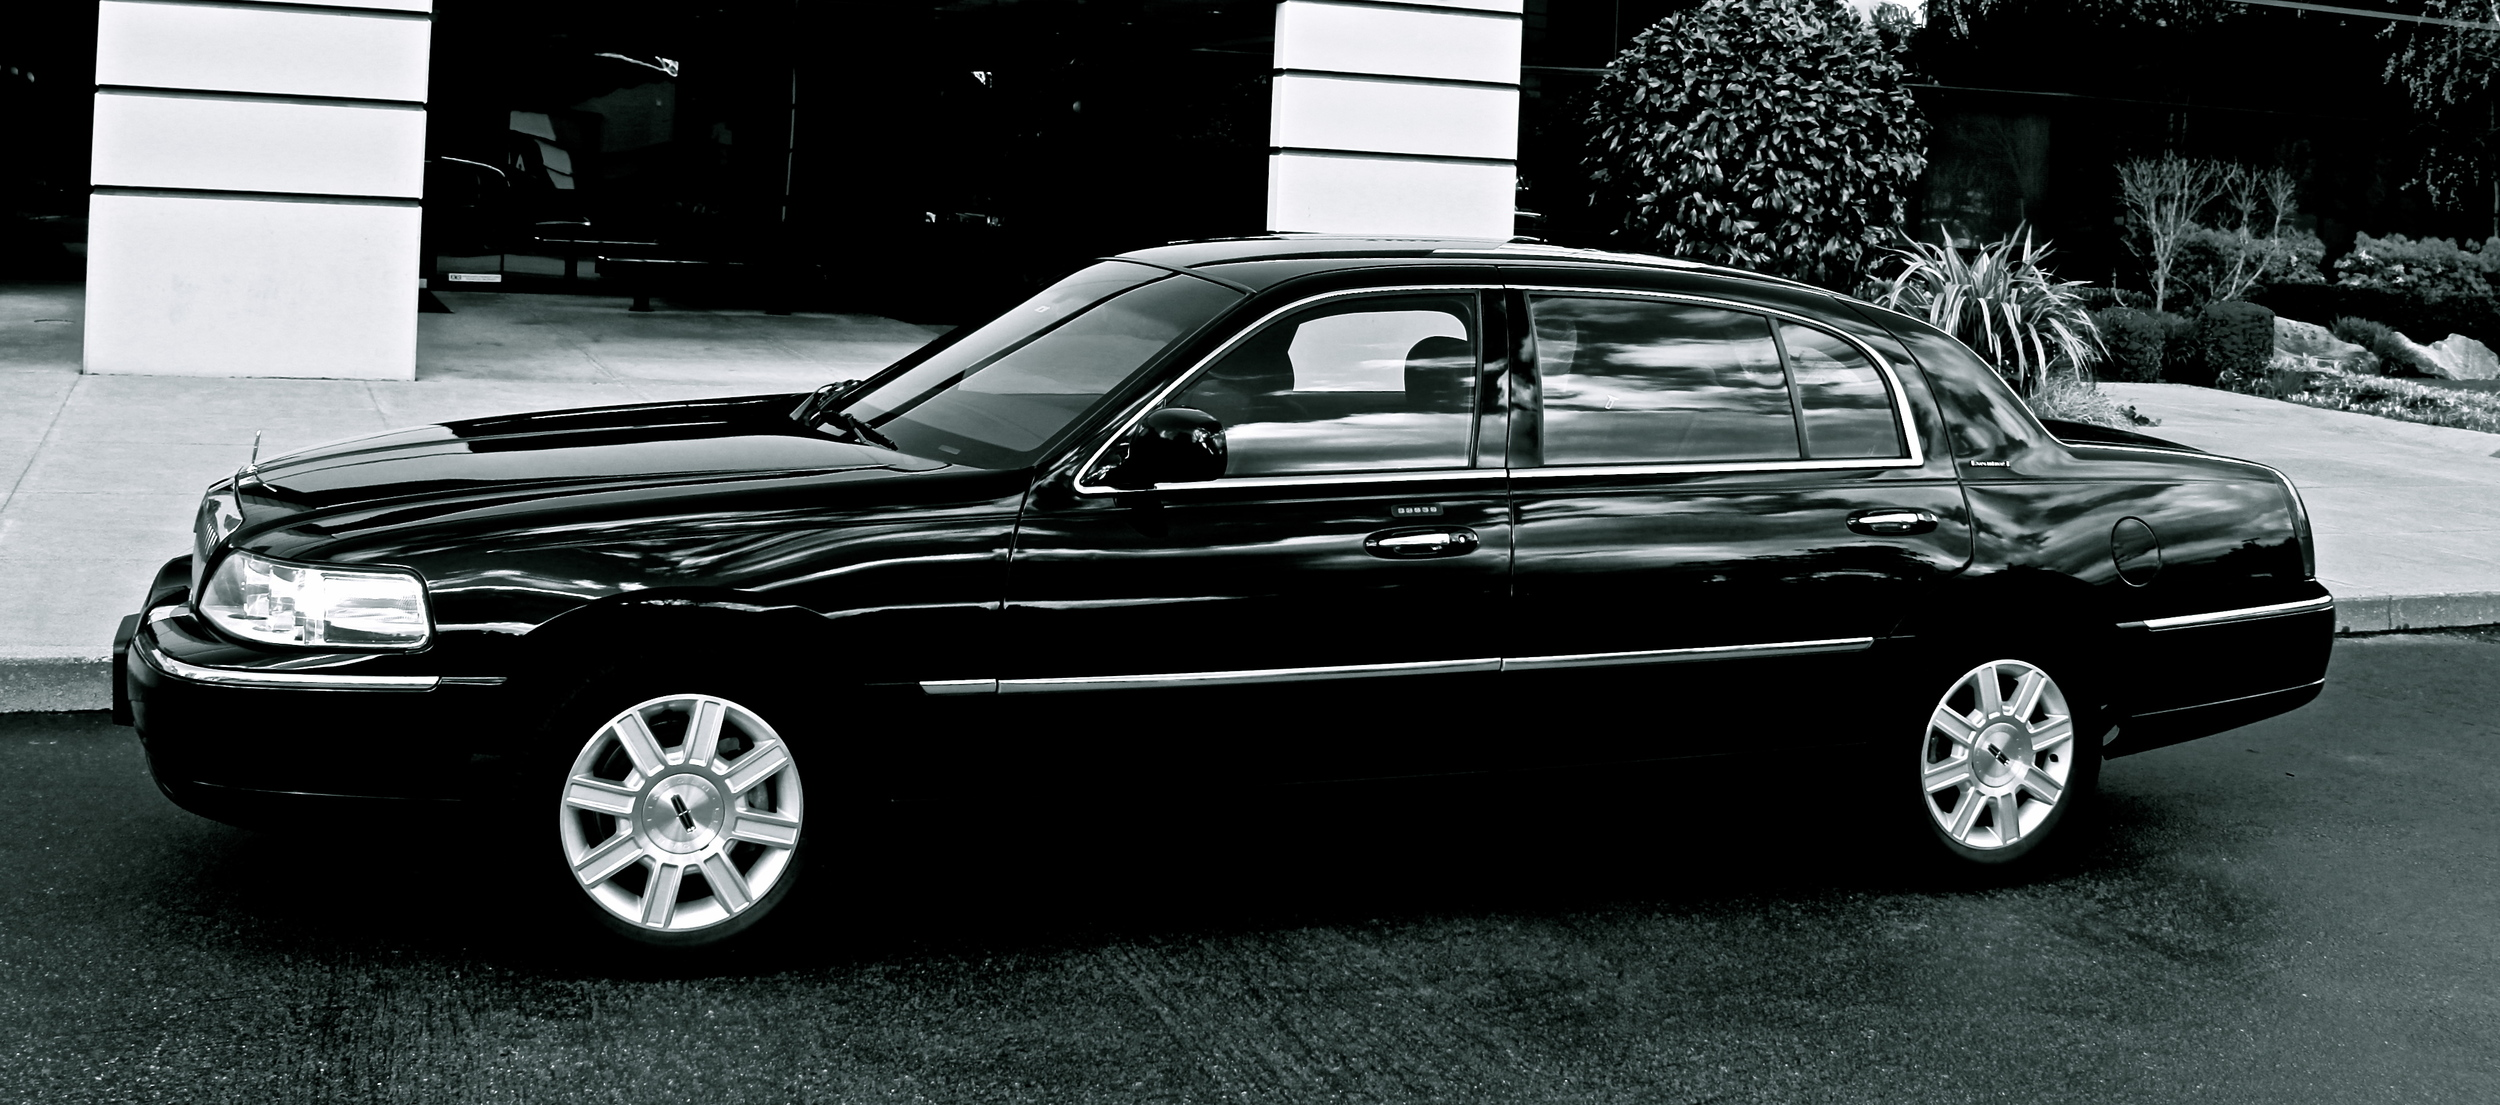 Airport Car Service Flat Rates 5 Star Transportation Services